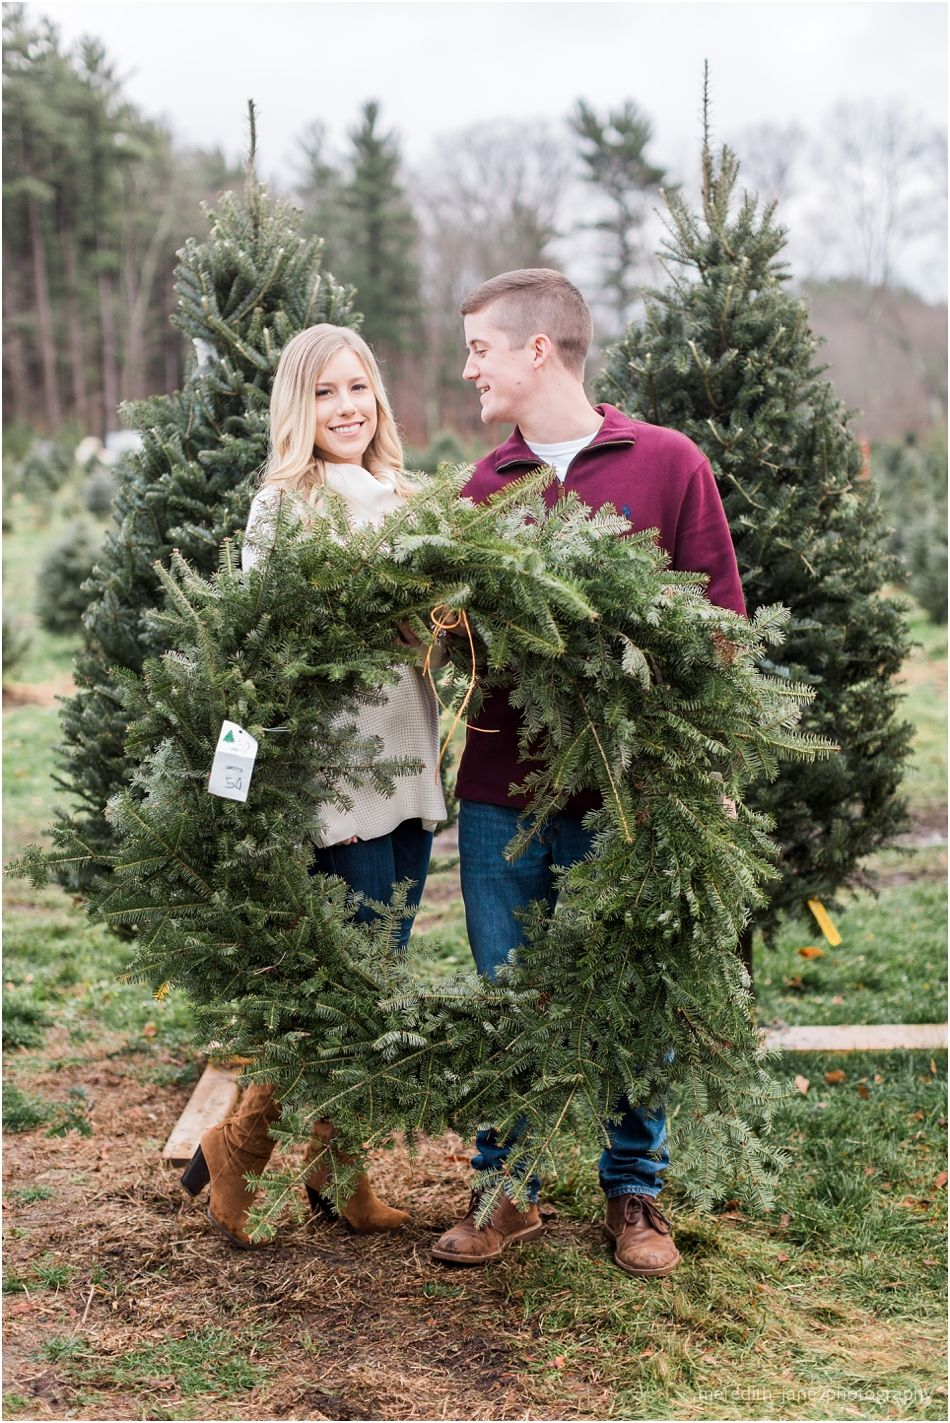 Mistletoe Acres Tree Farm Engagement Meredith Jane Photography Tree Farms Christmas Kiss Acre